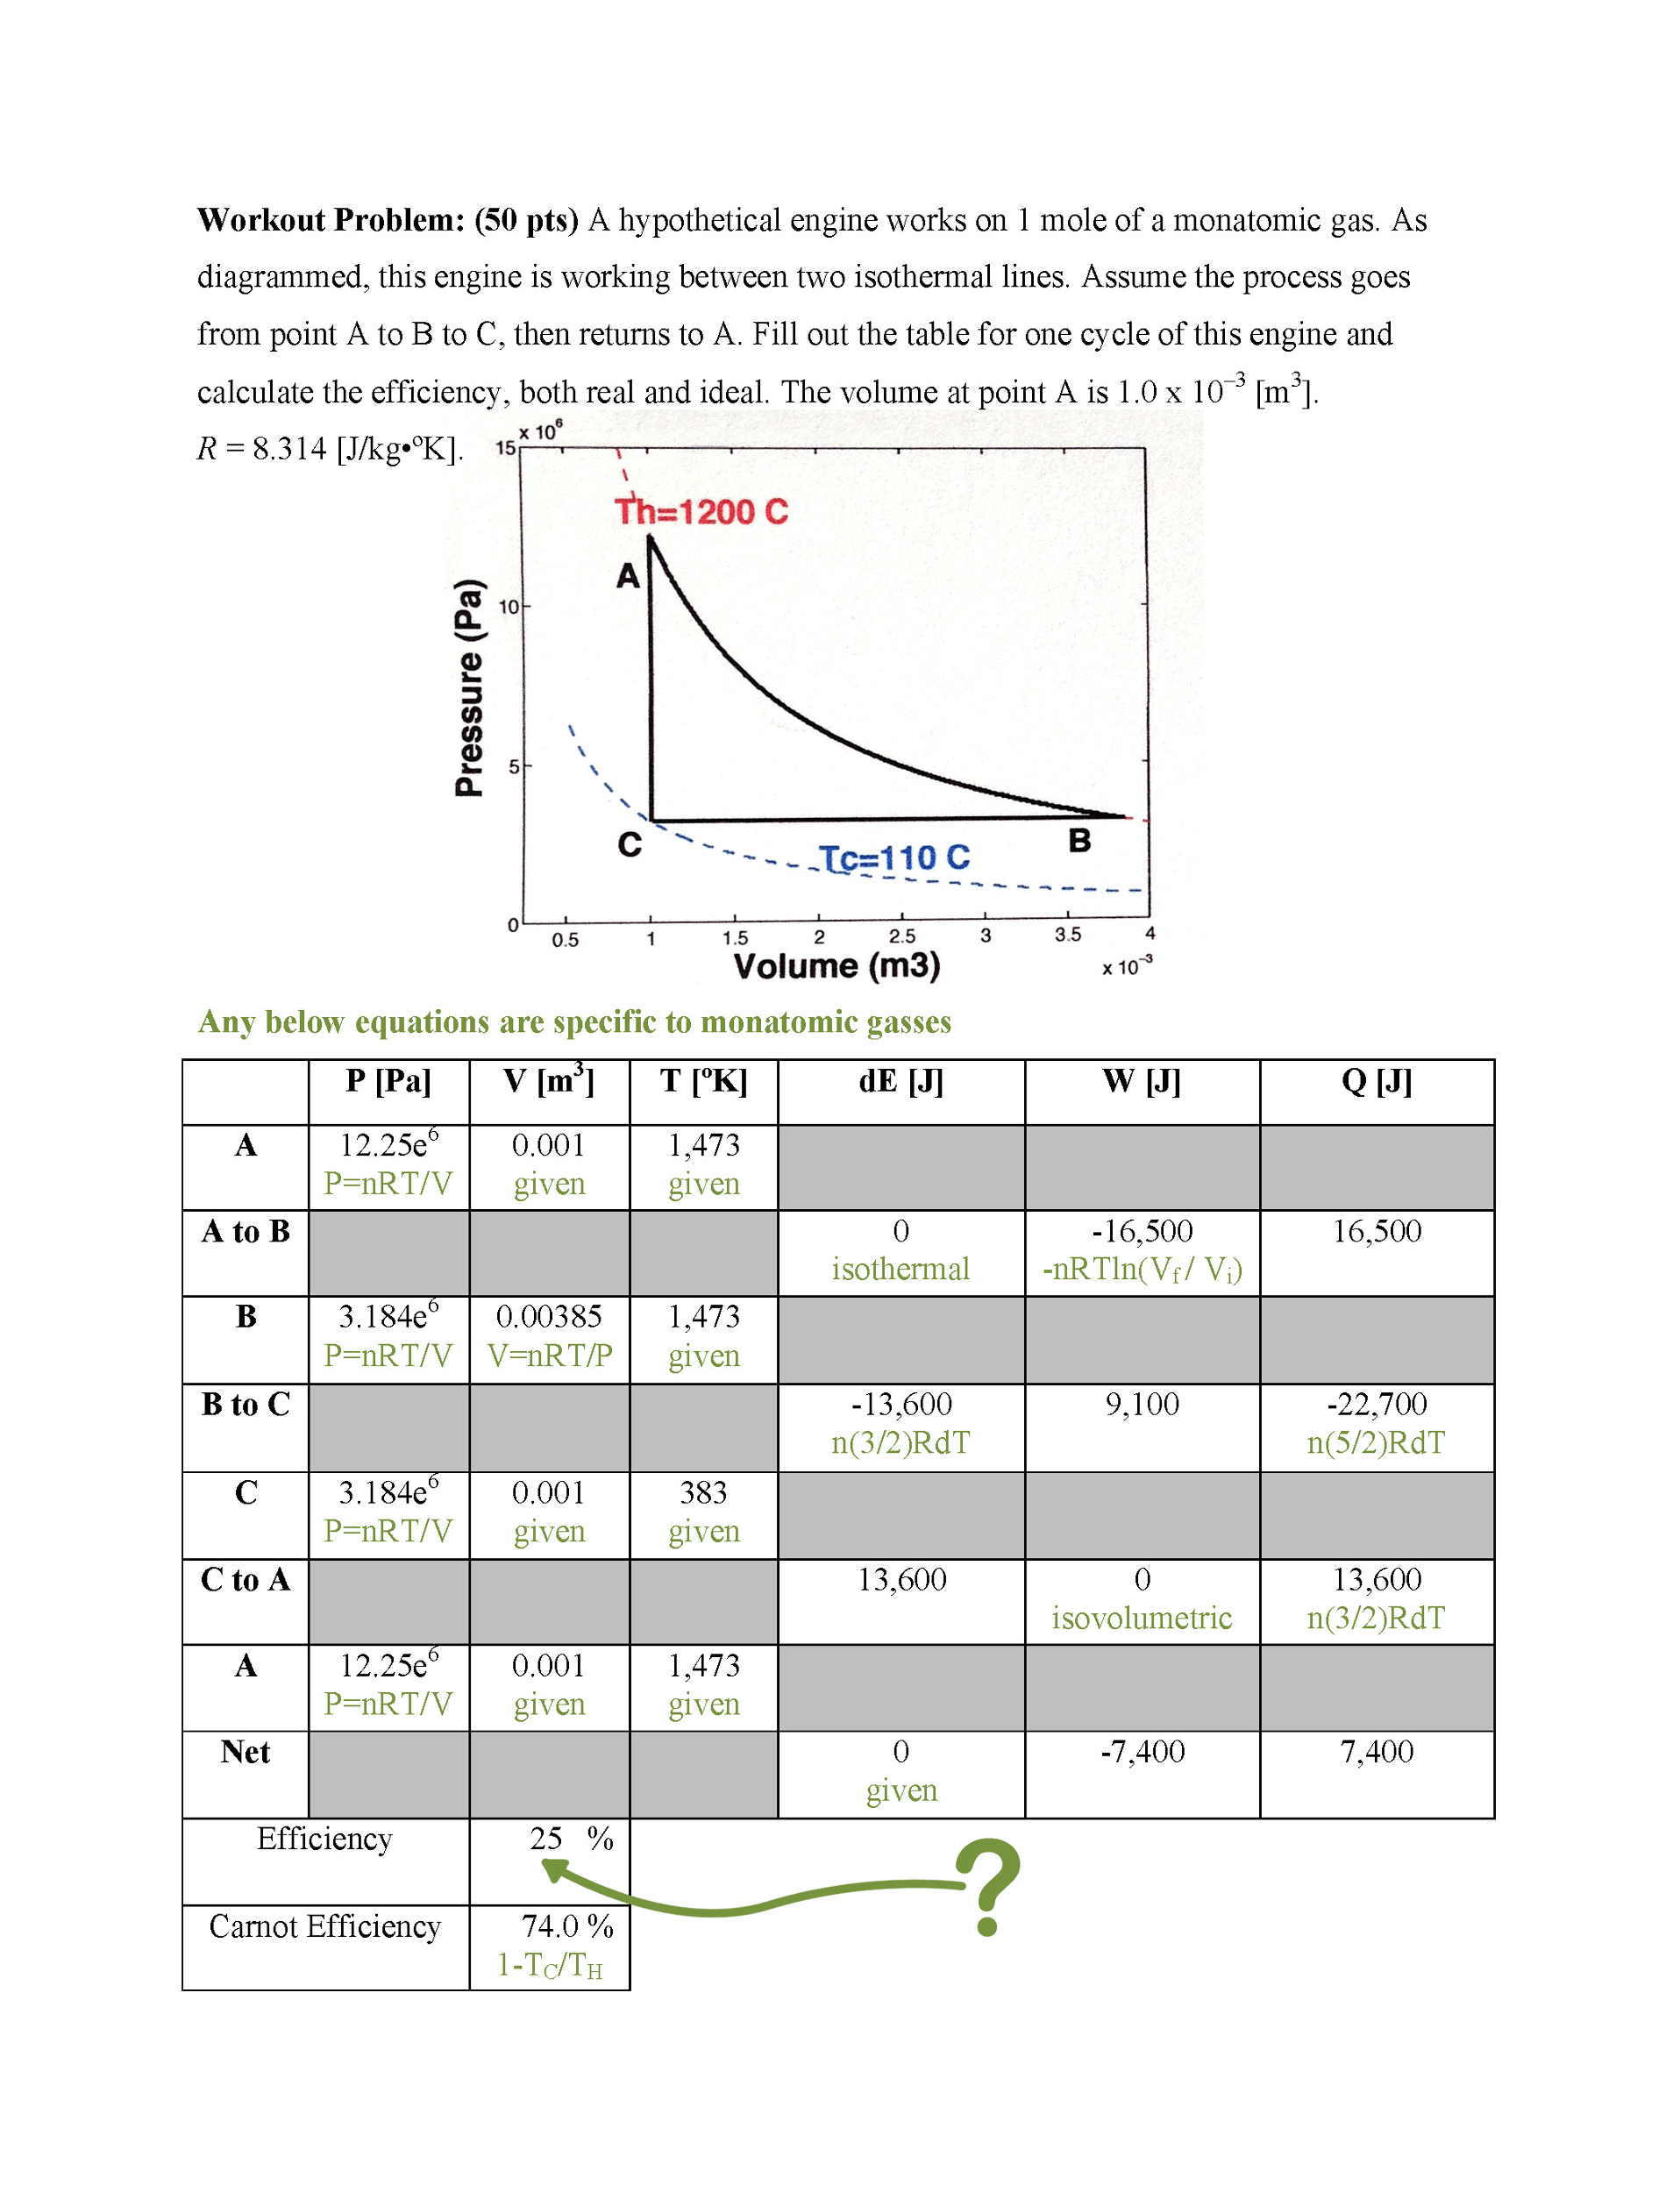 hight resolution of second my instructor said the real efficiency of this engine was 25 but i can t figure out how he got that answer any help would very appreciated